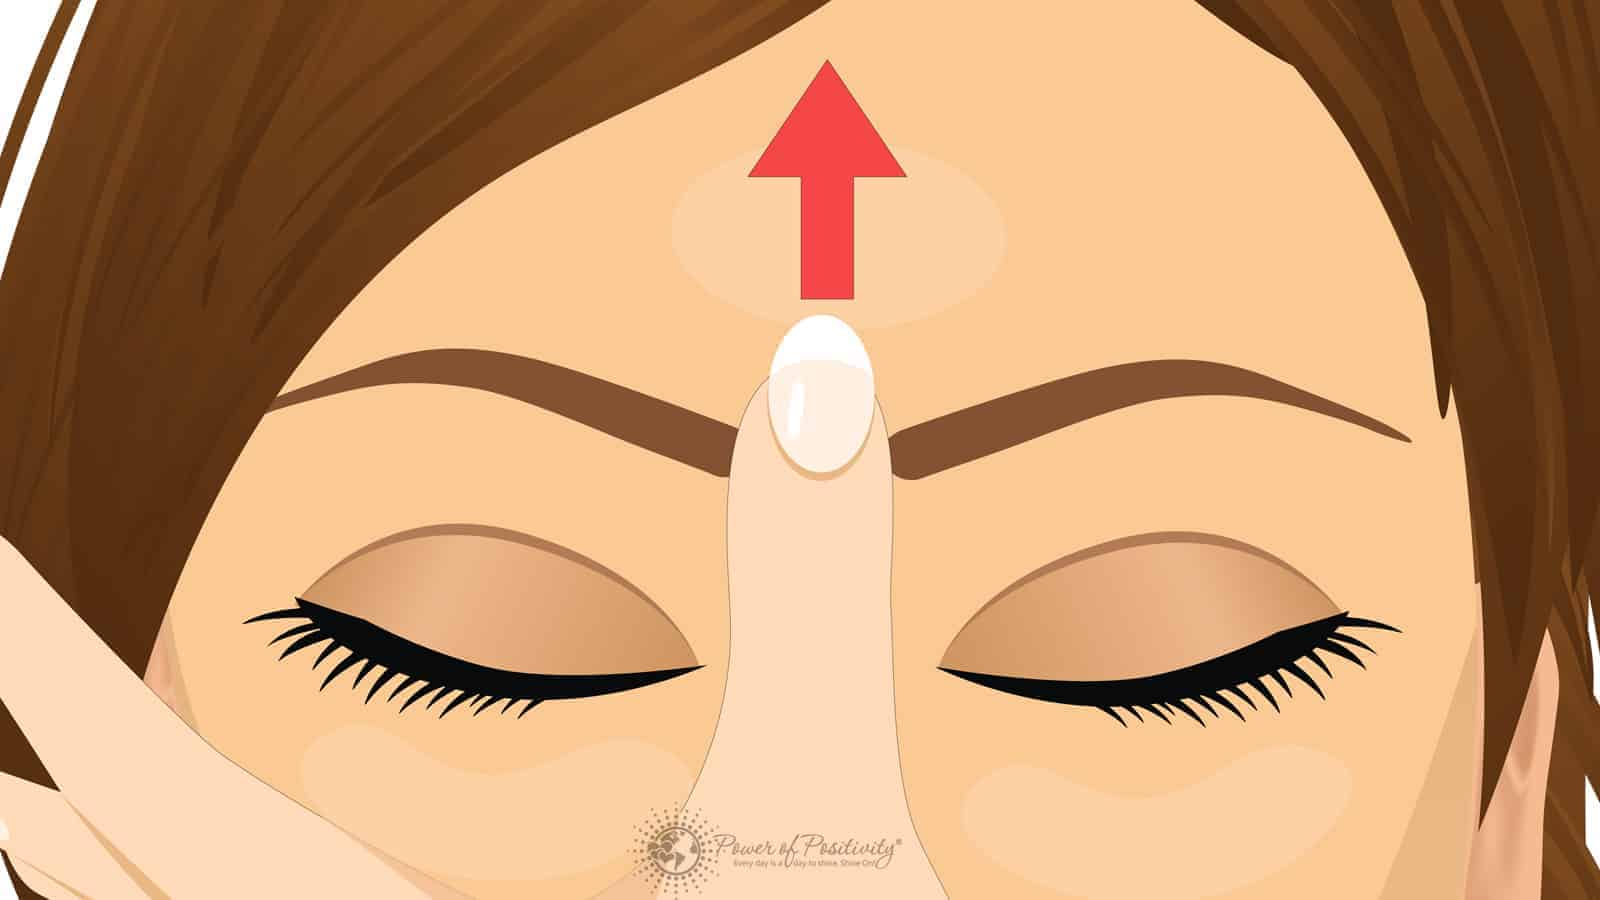 Heres What Happens When You Massage This Point On Your Forehead